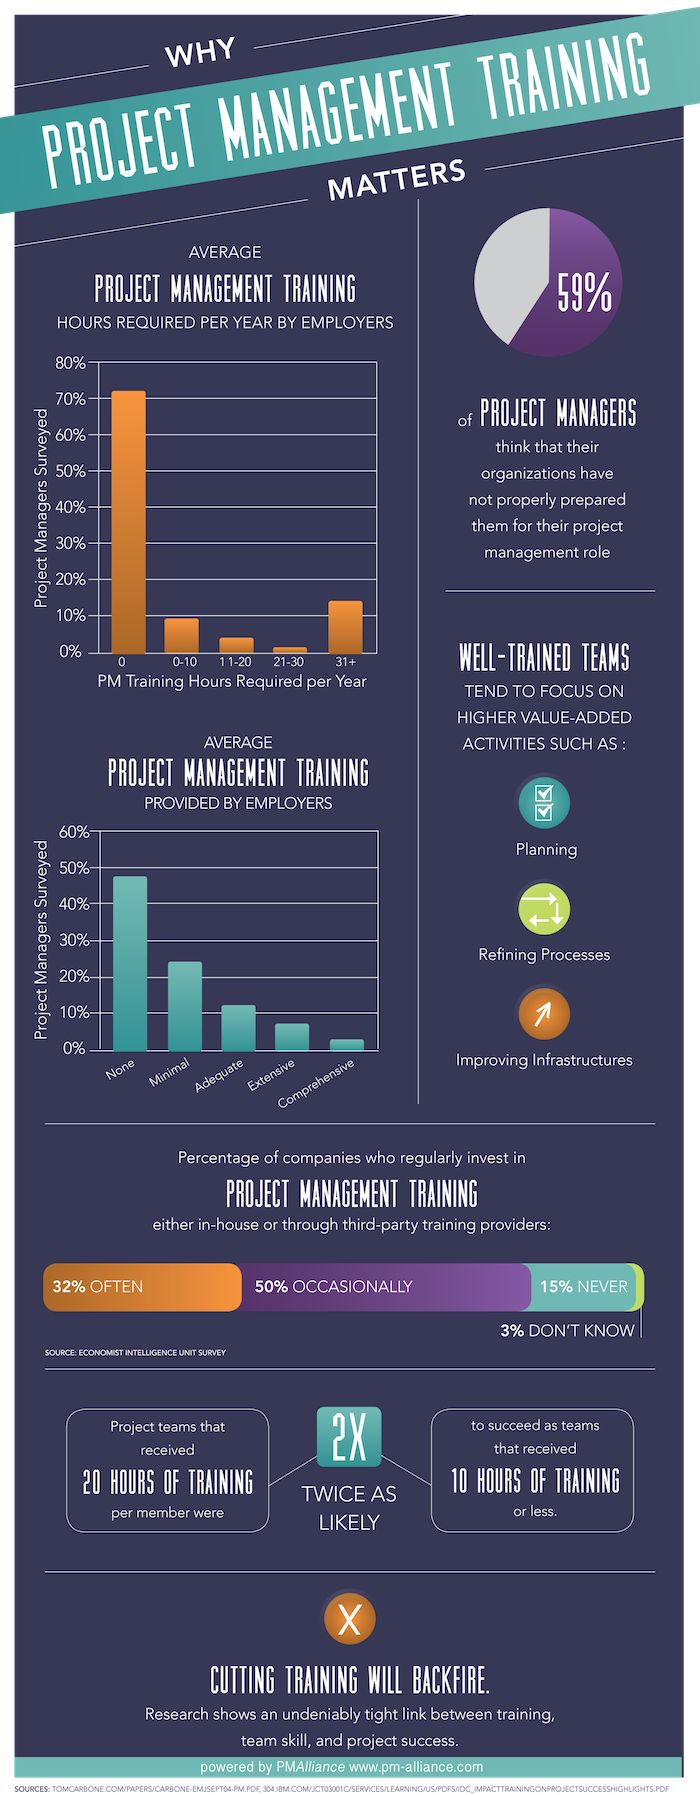 166 Best Project Management Images By Lea Caldwell On Pinterest